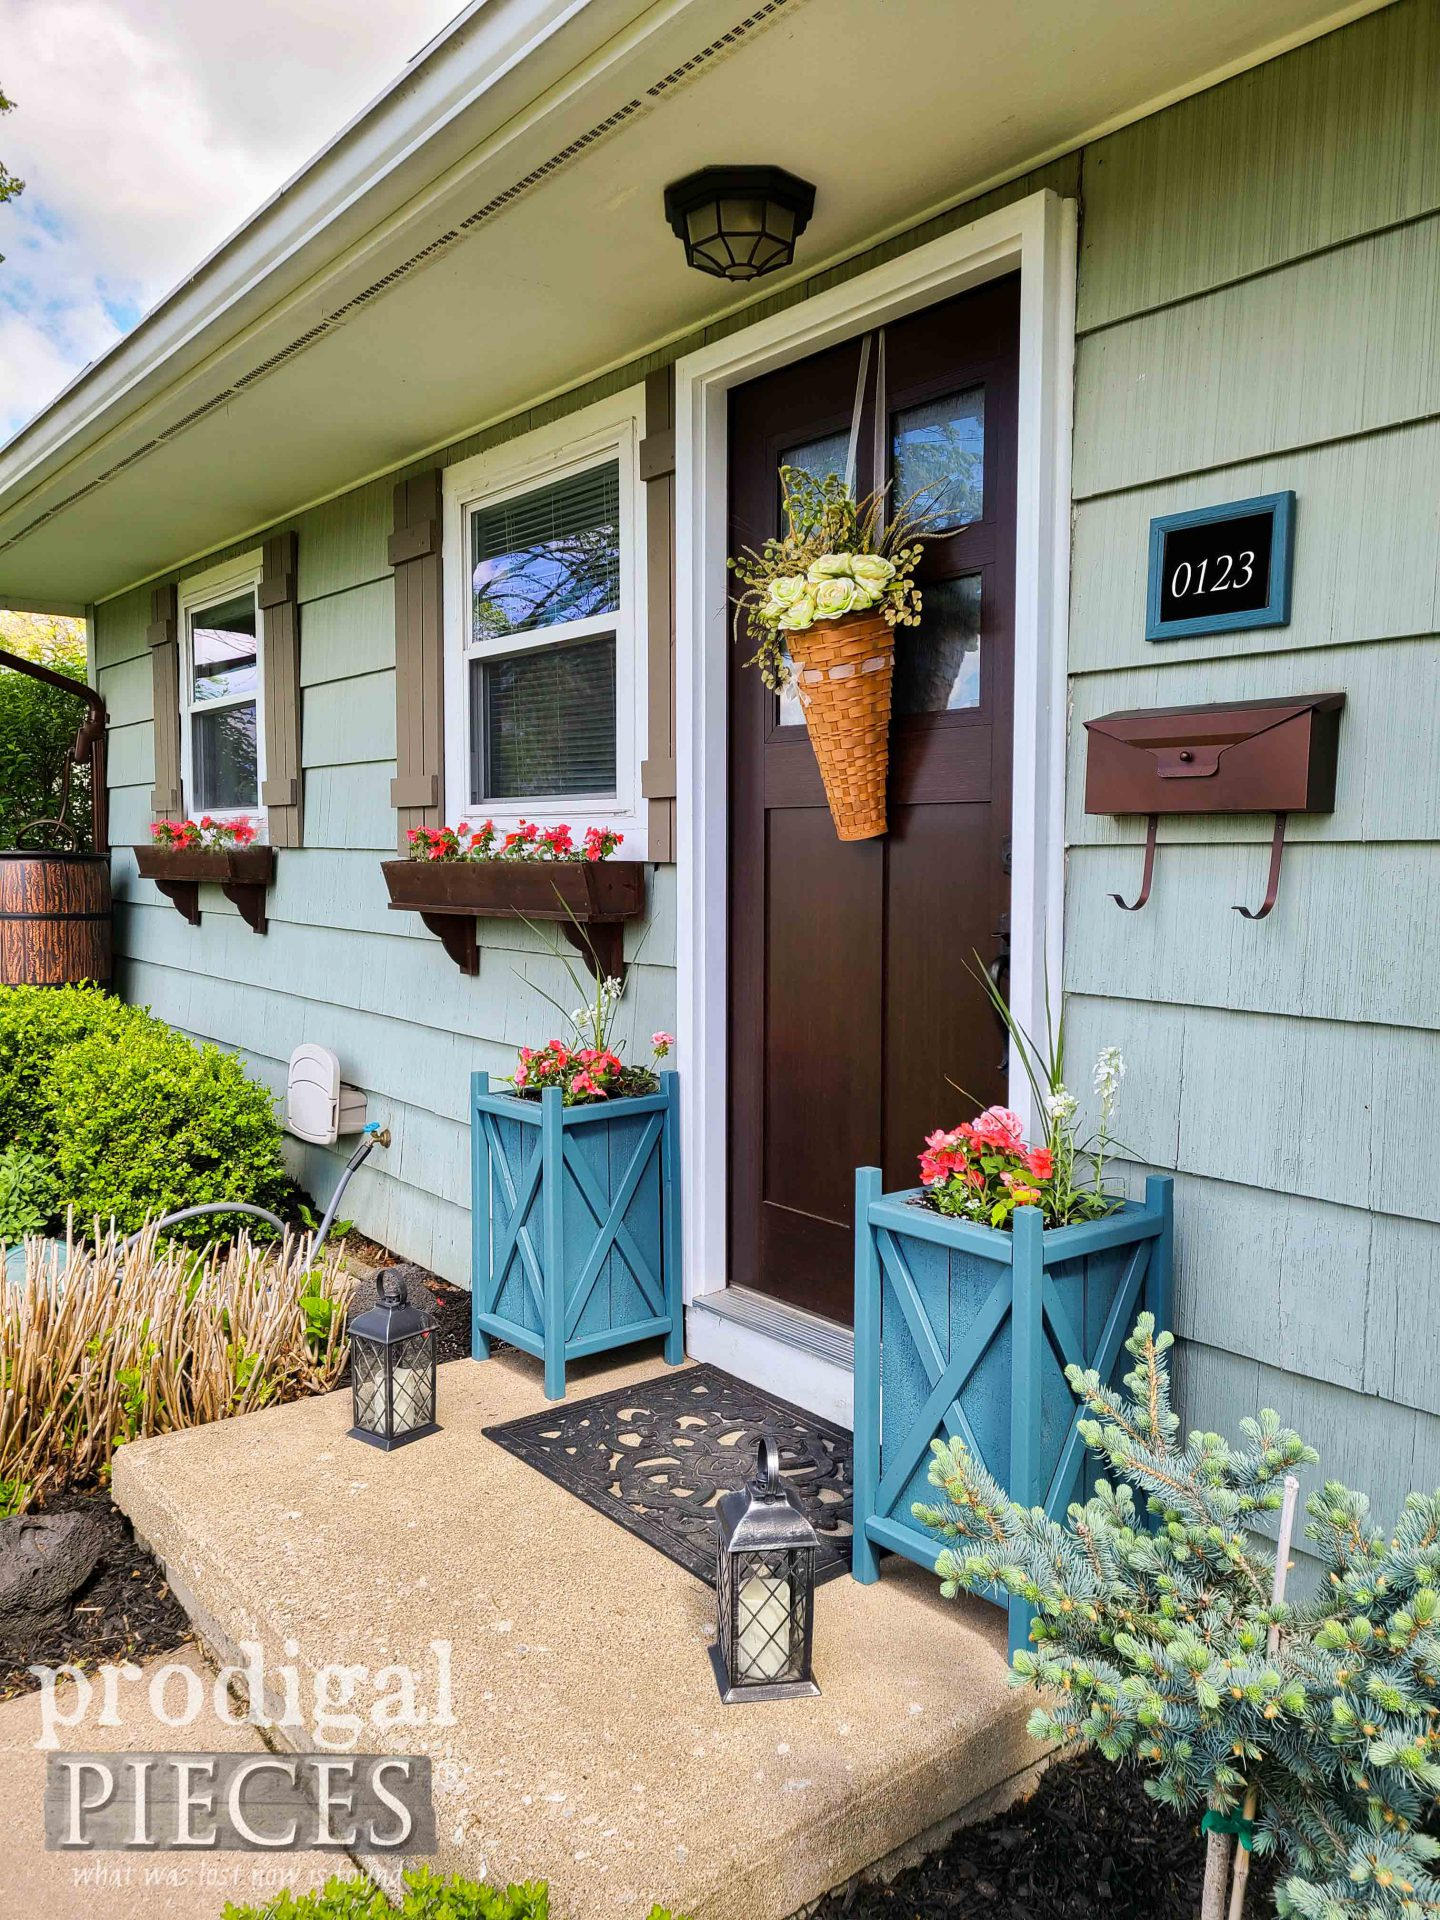 Update Planters for Front Door Decor by Larissa of Prodigal Pieces | prodigalpieces.com #prodigapieces #home #woodworking #garden